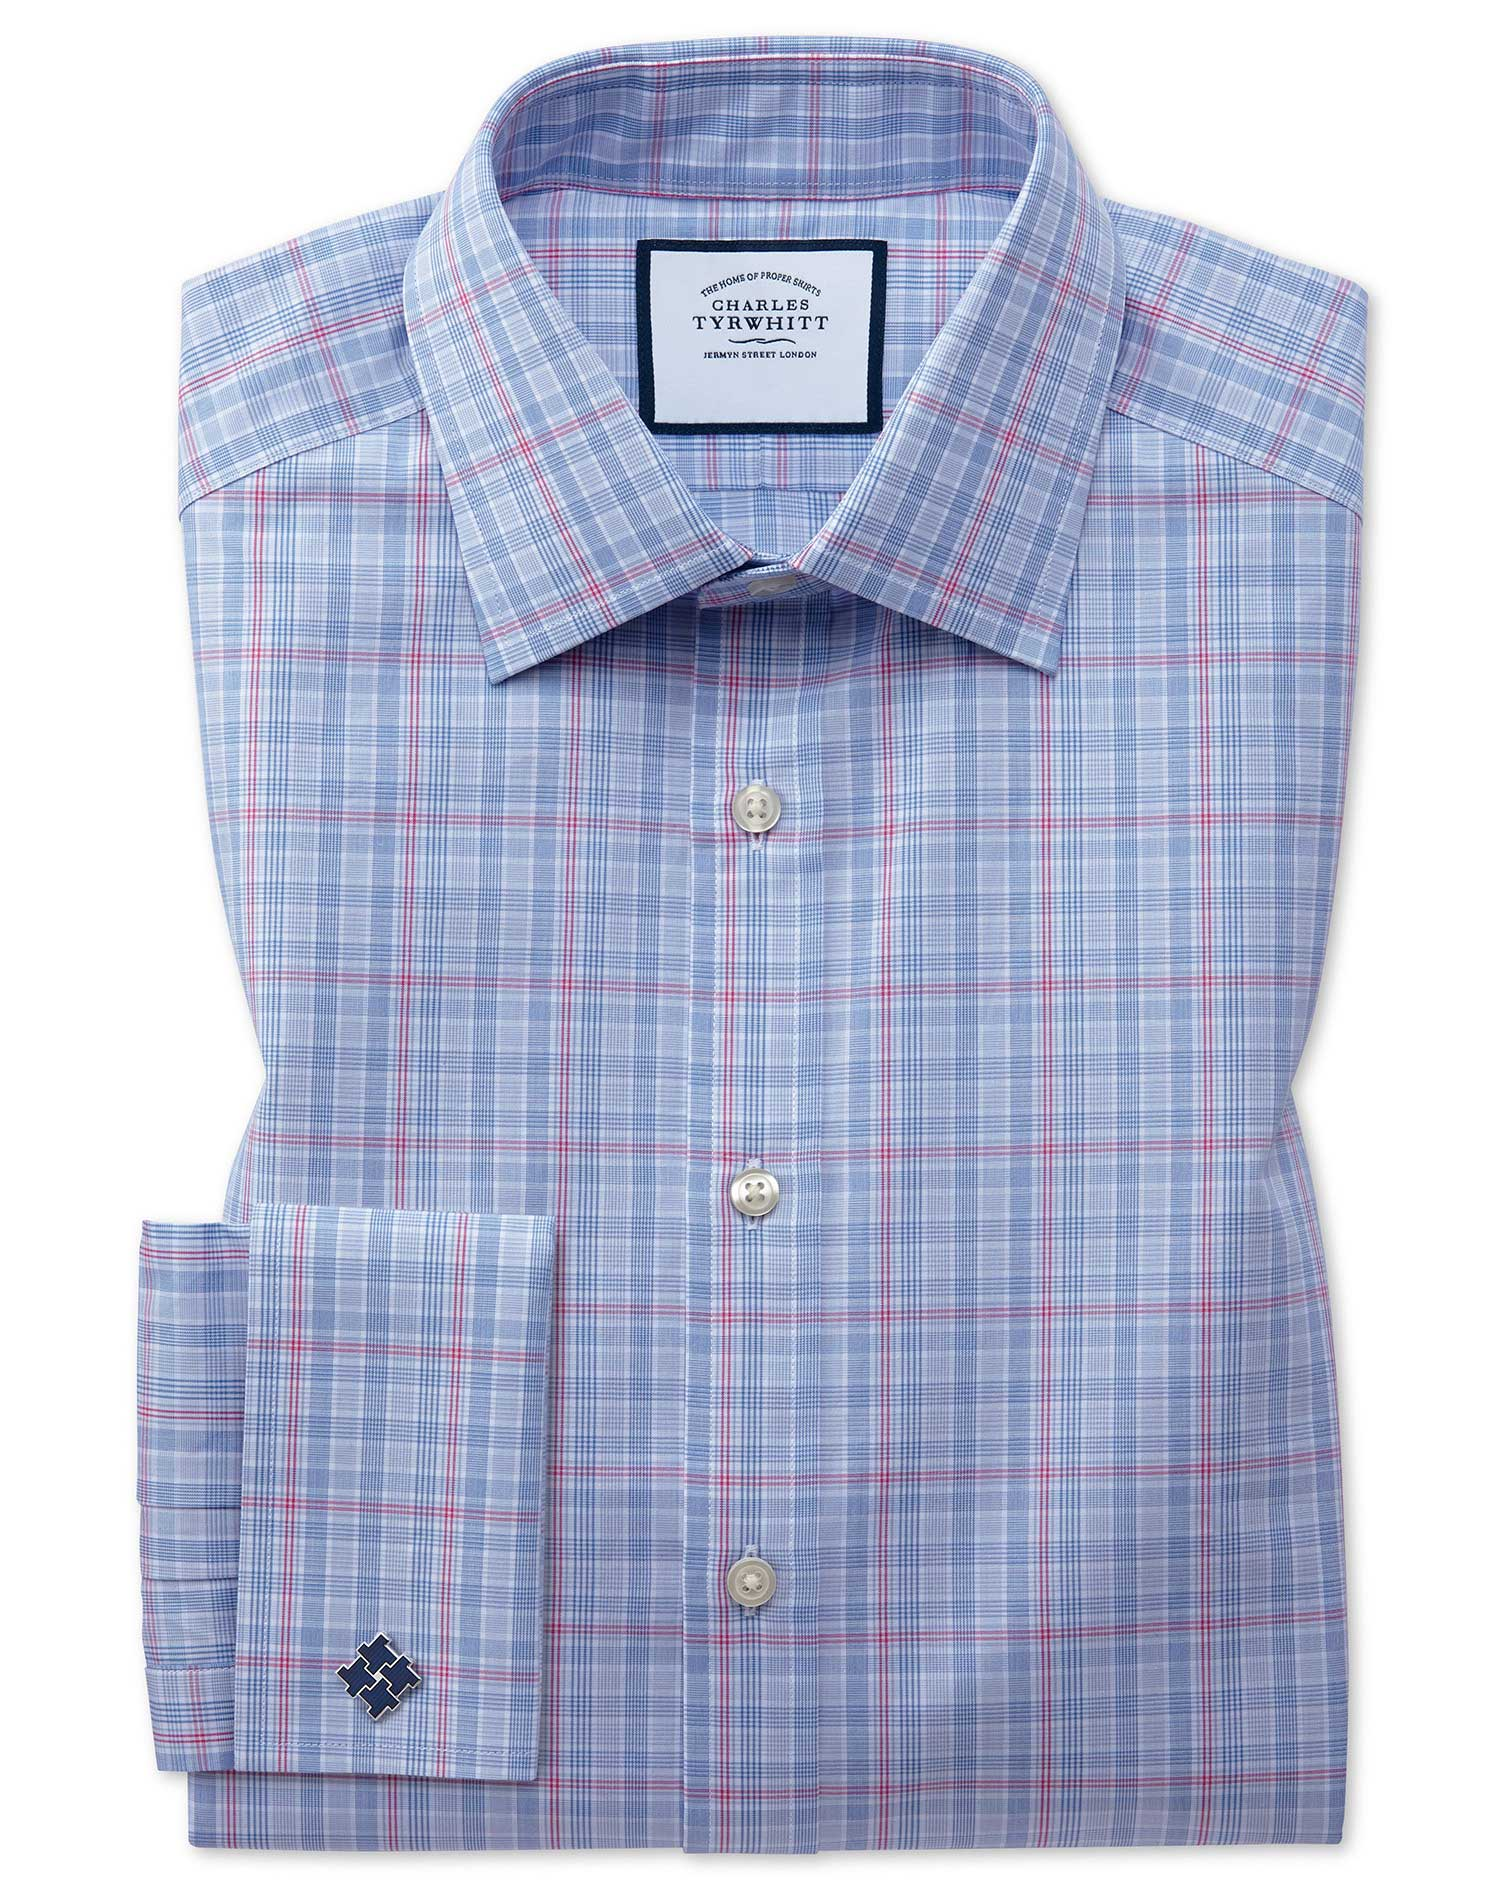 Slim Fit Blue and Pink Prince Of Wales Check Cotton Formal Shirt Single Cuff Size 14.5/32 by Charles